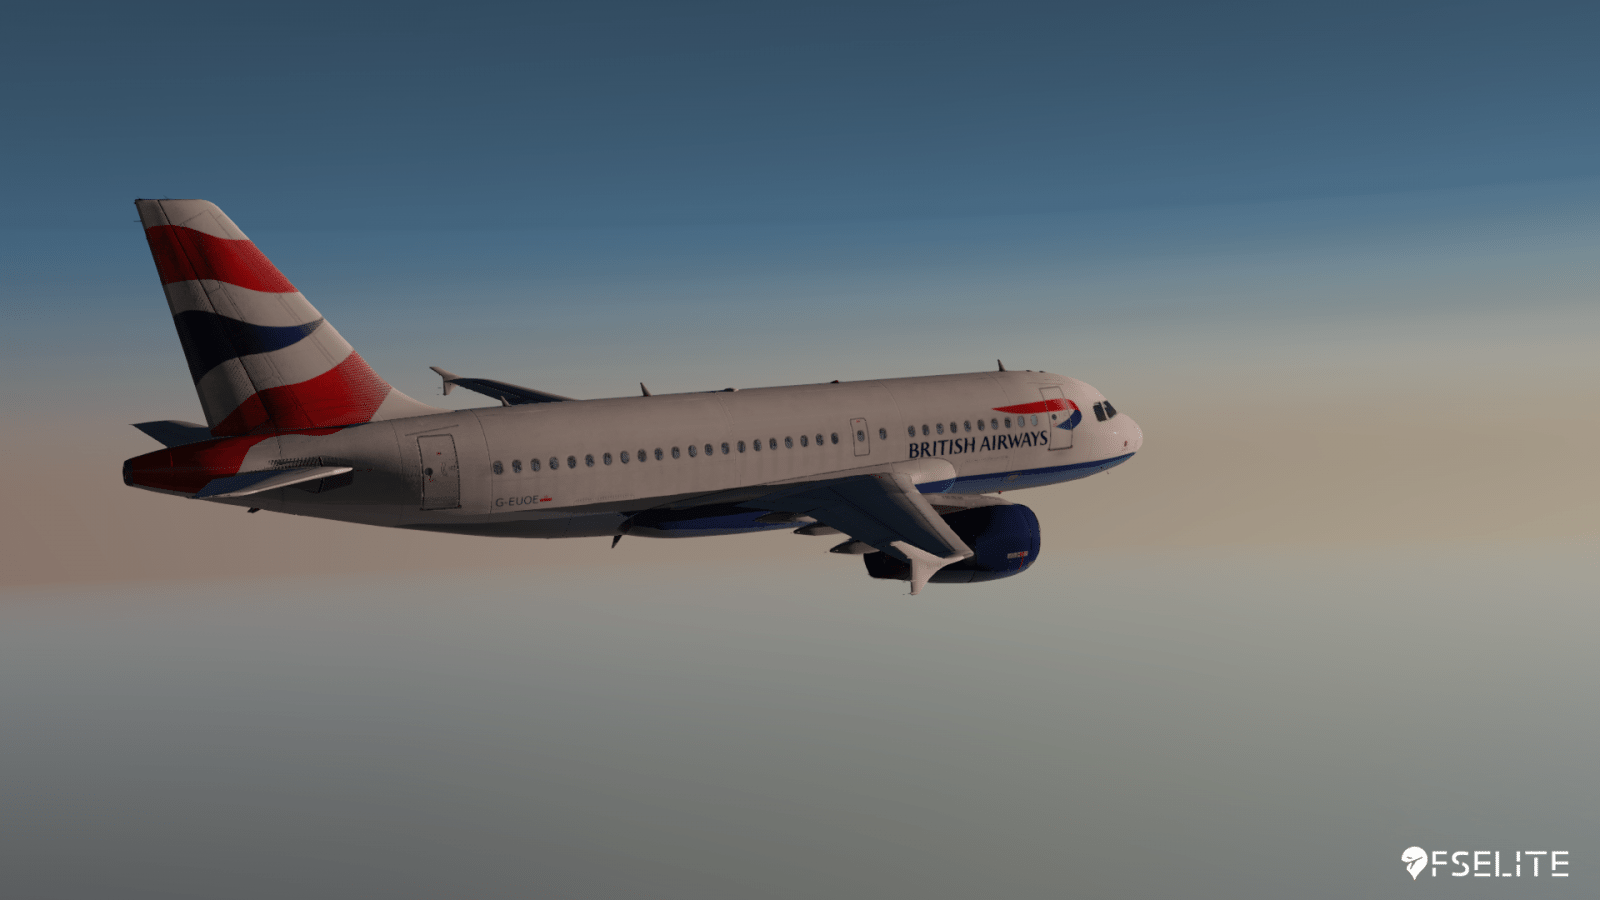 Toliss A319 Liveries Related Keywords & Suggestions - Toliss